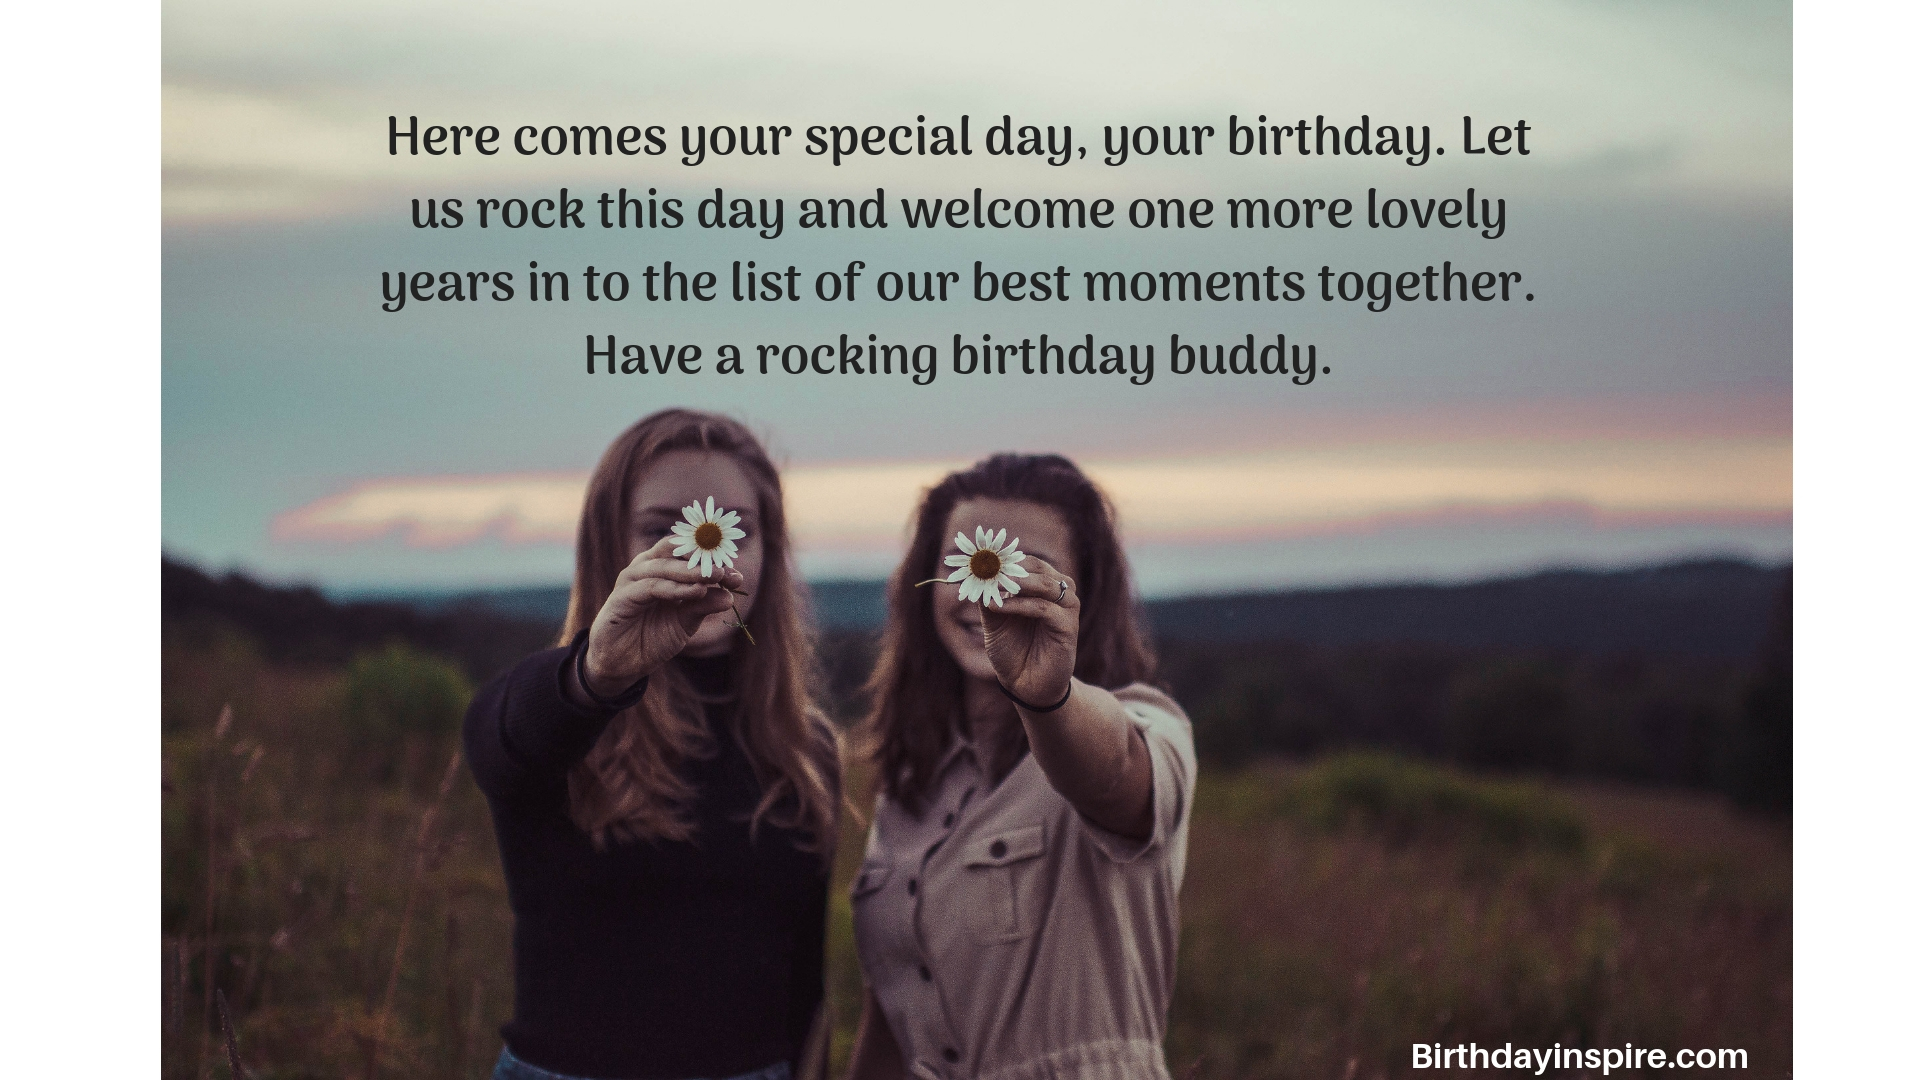 55 Touching Birthday wishes for Best FriendBirthday Inspire